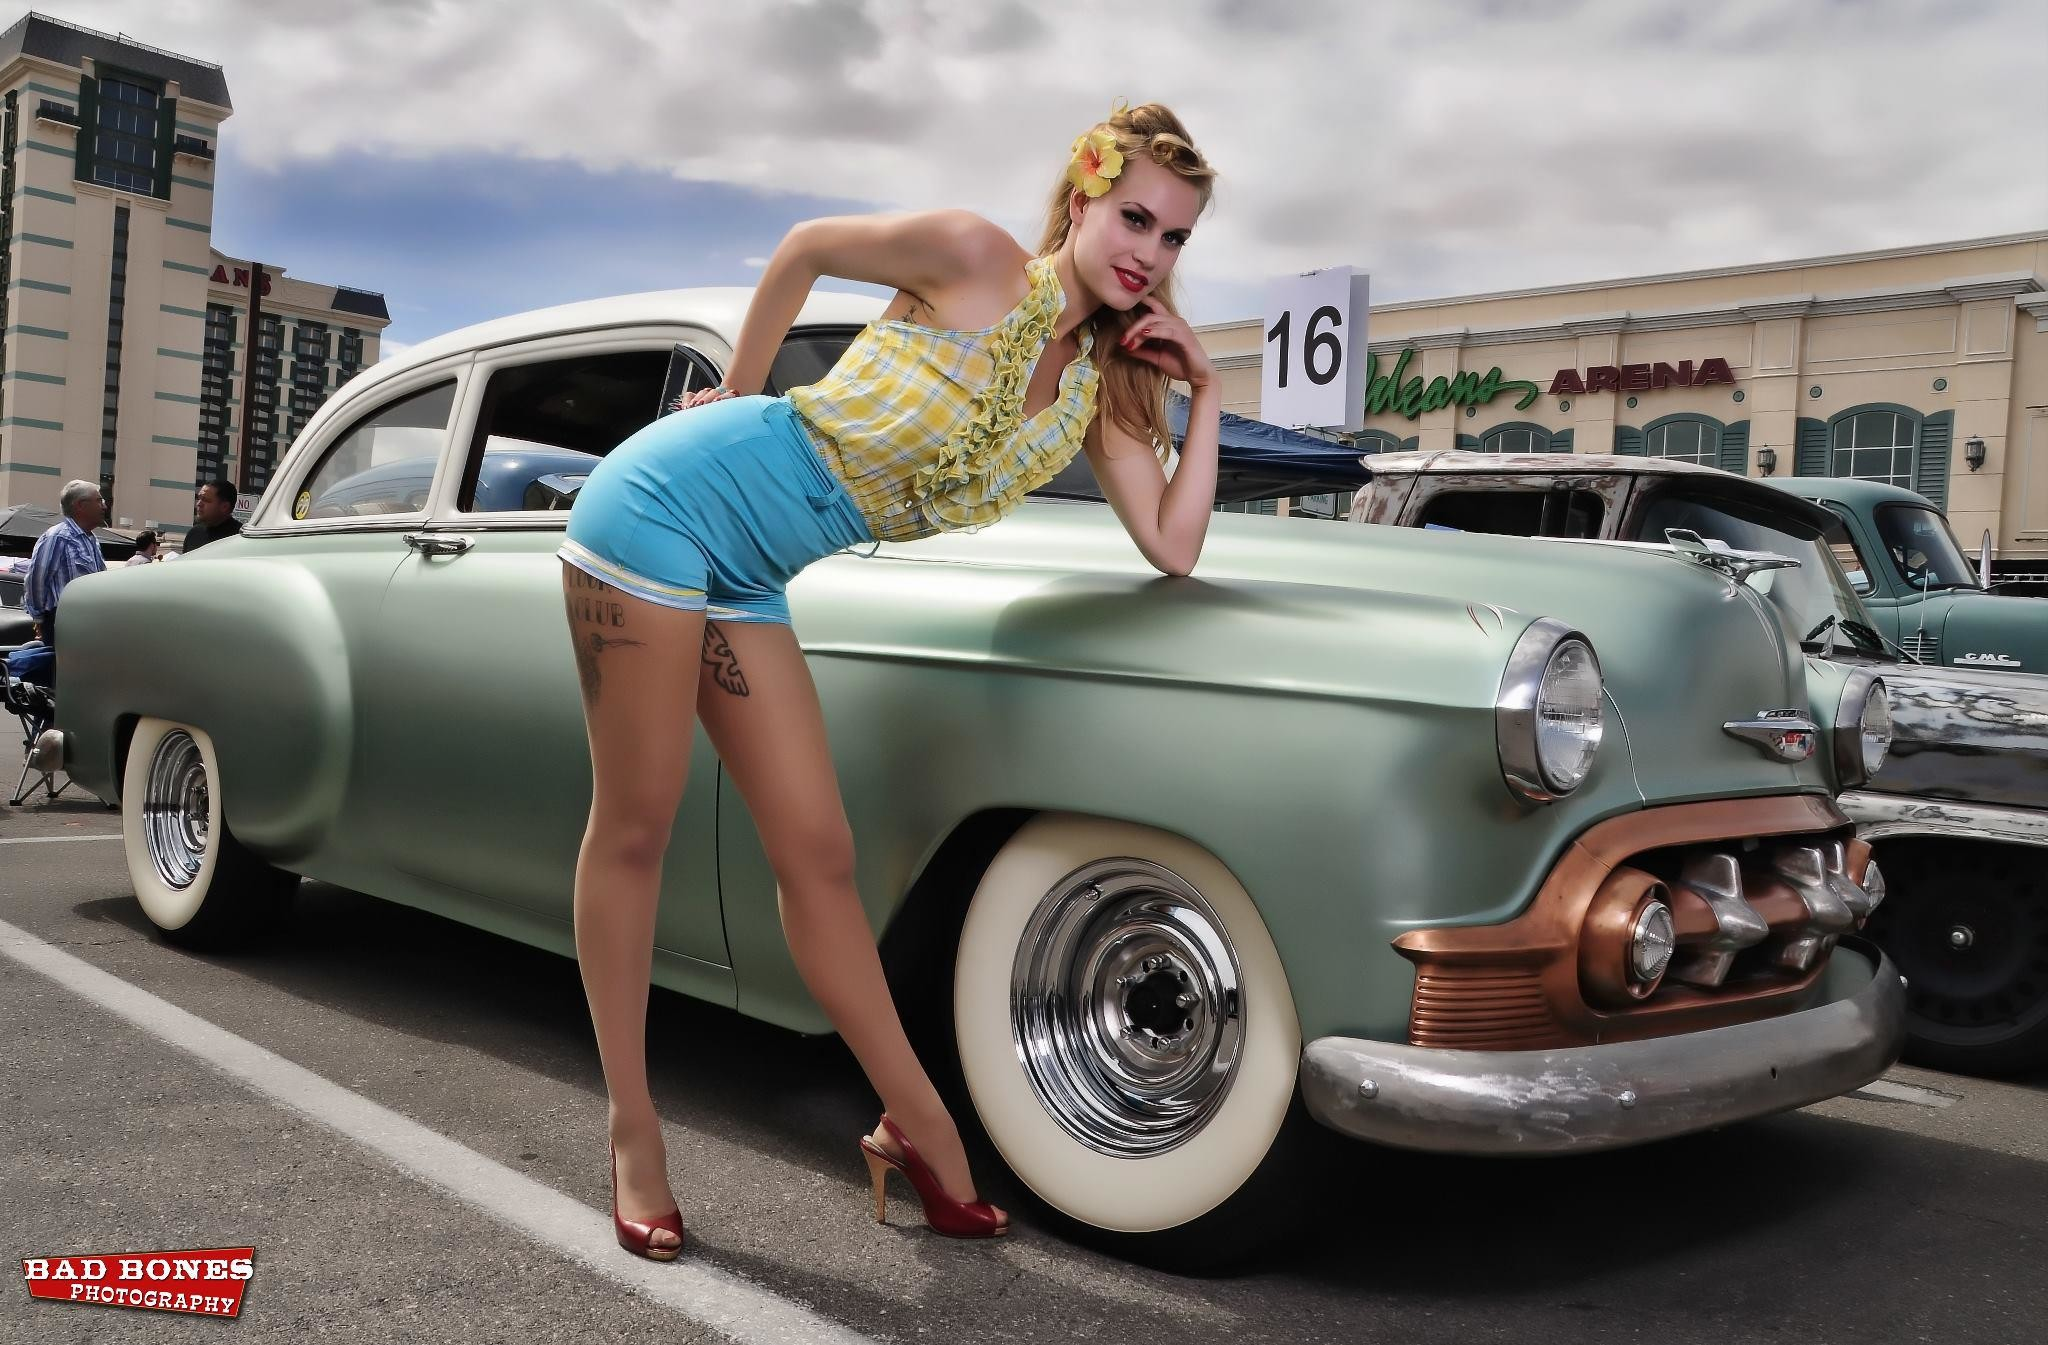 Explore Hot Rod Cars, Hot Rods, and more! Pin up Girl Wallpaper …